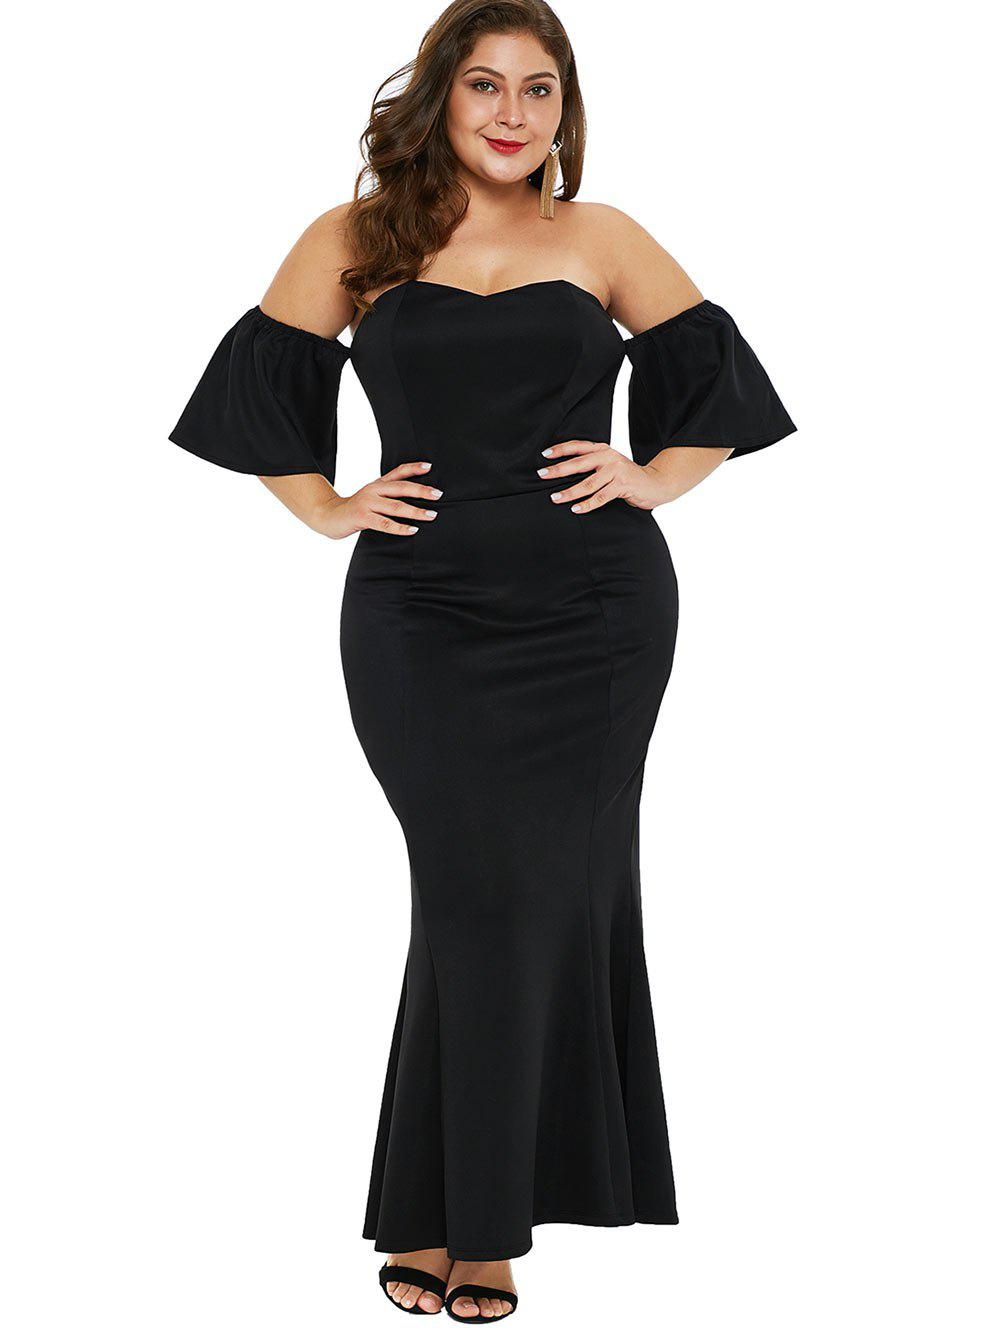 Fashion Short Sleeve Plus Size Off The Shoulder Mermaid Dress